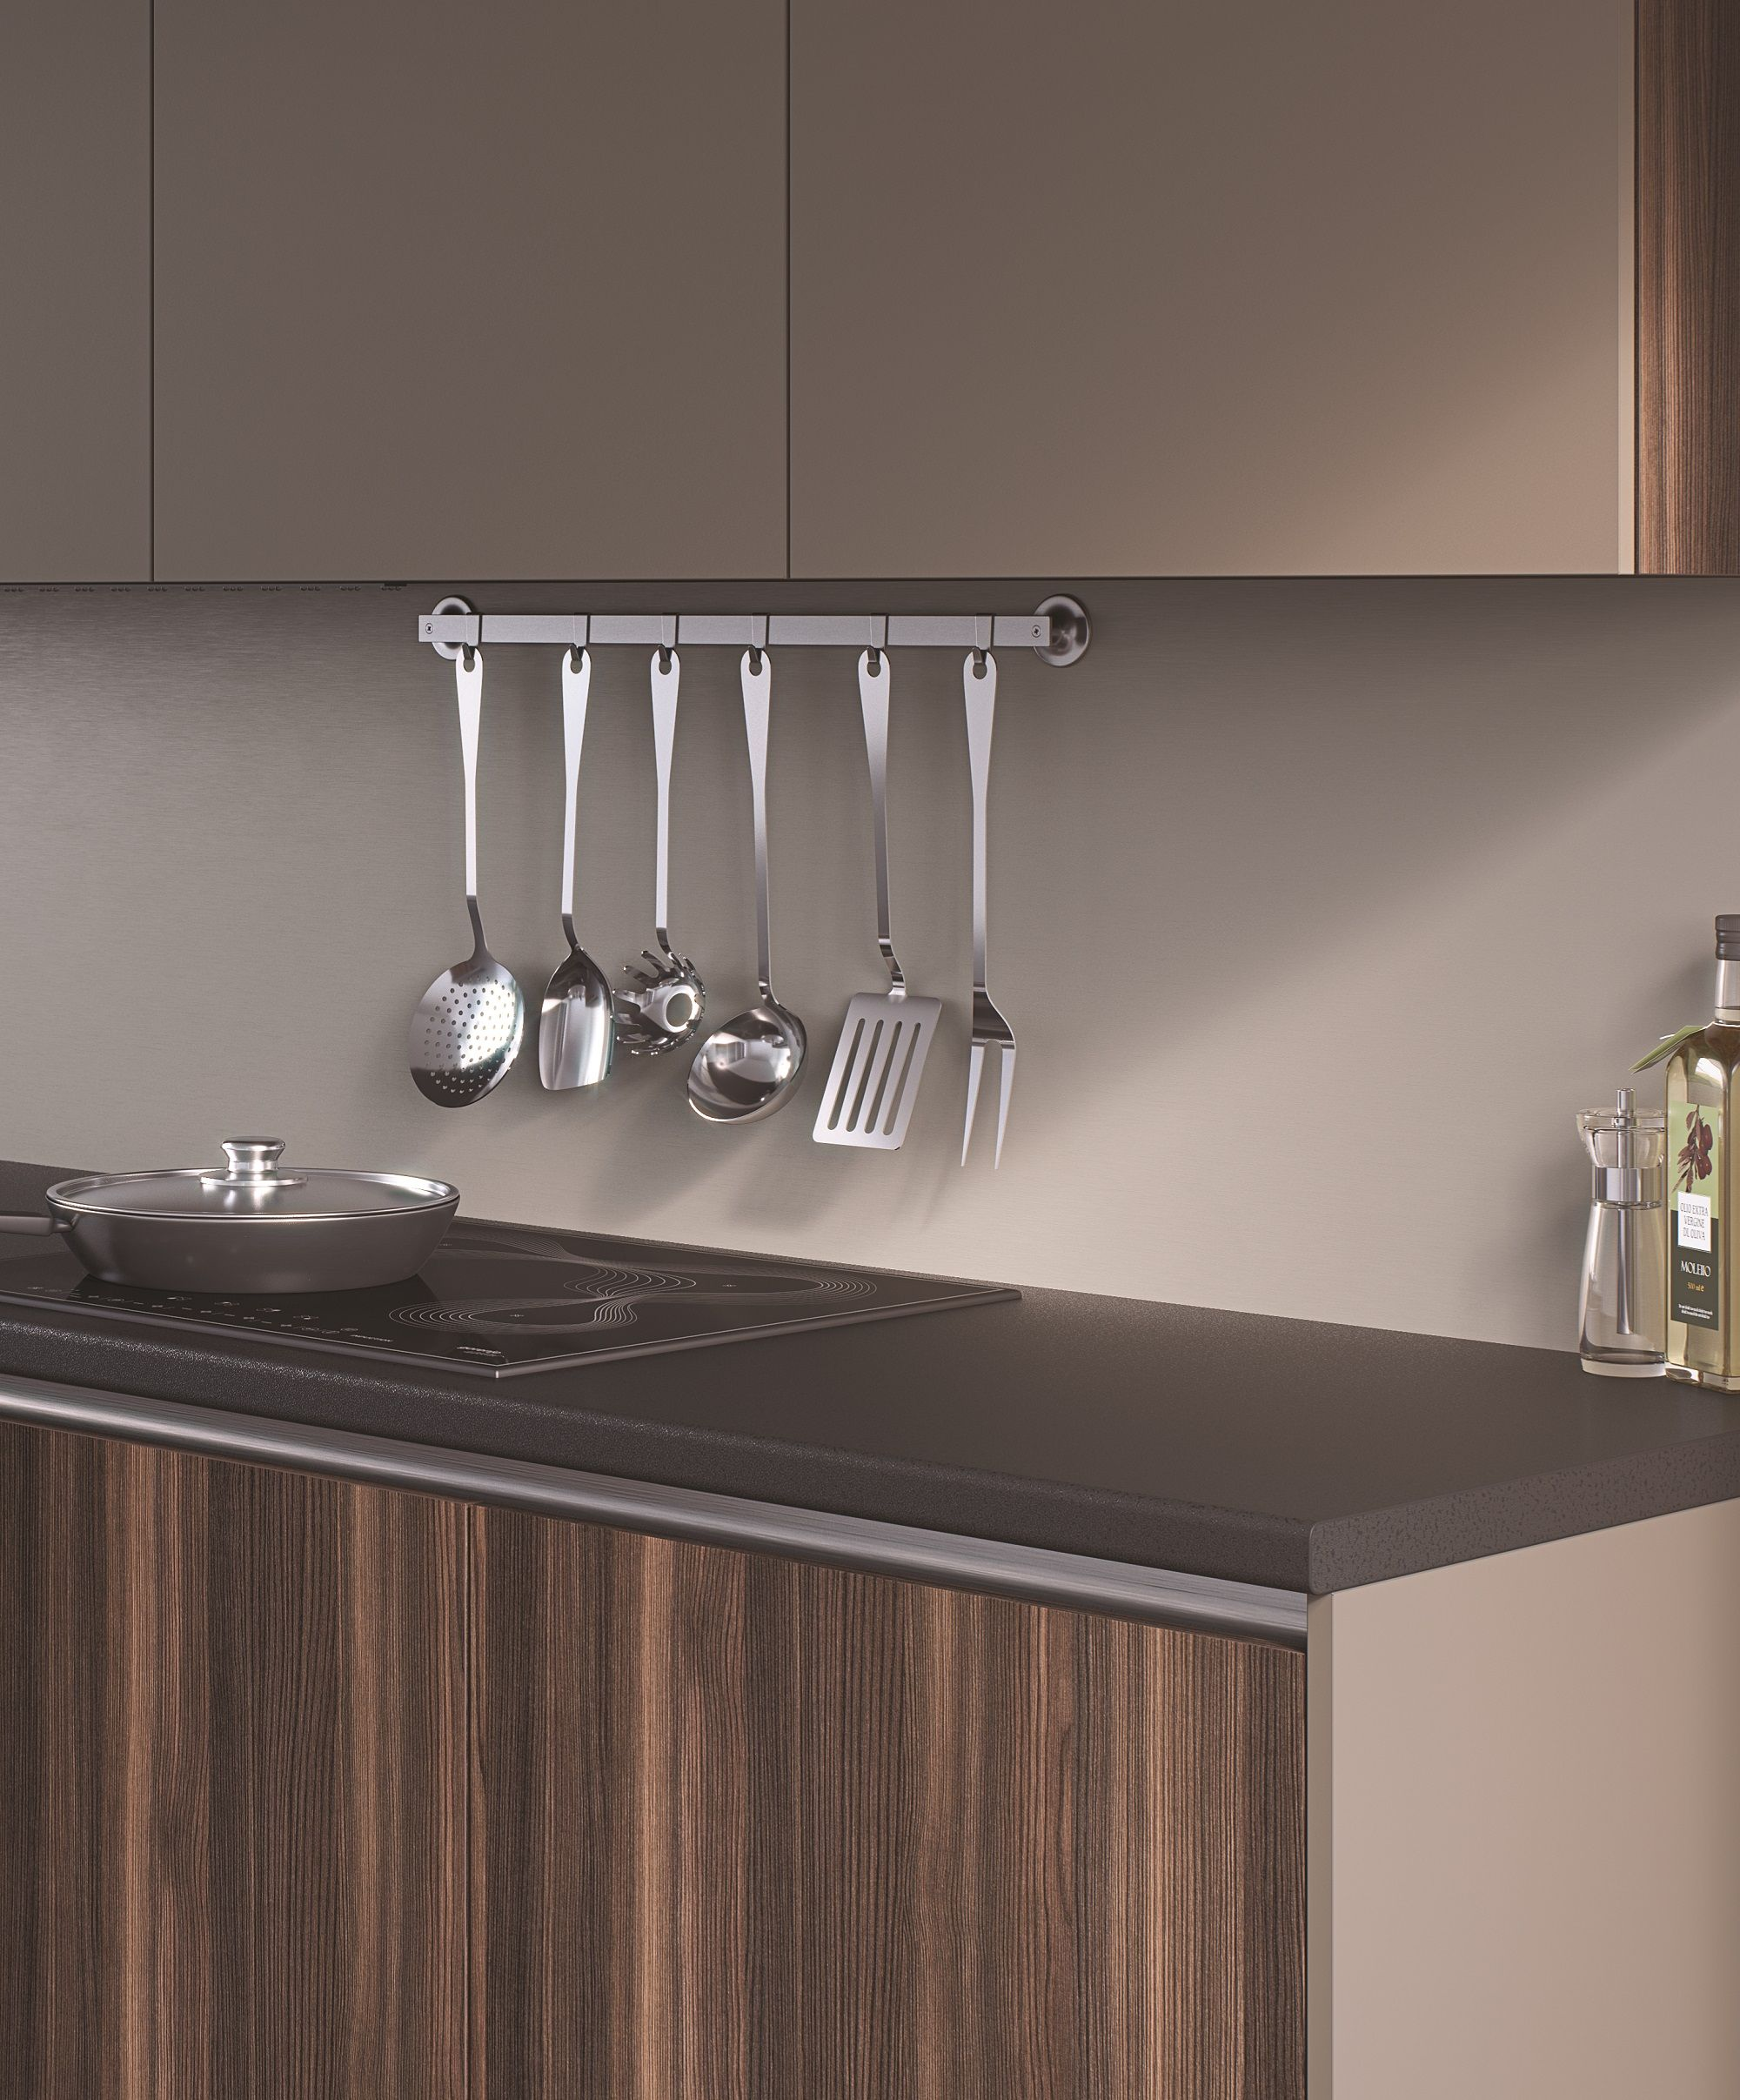 John Lewis Kitchen Worktops: EGGER Kitchen Worktop: U999 ST89 Black Dark Worktops